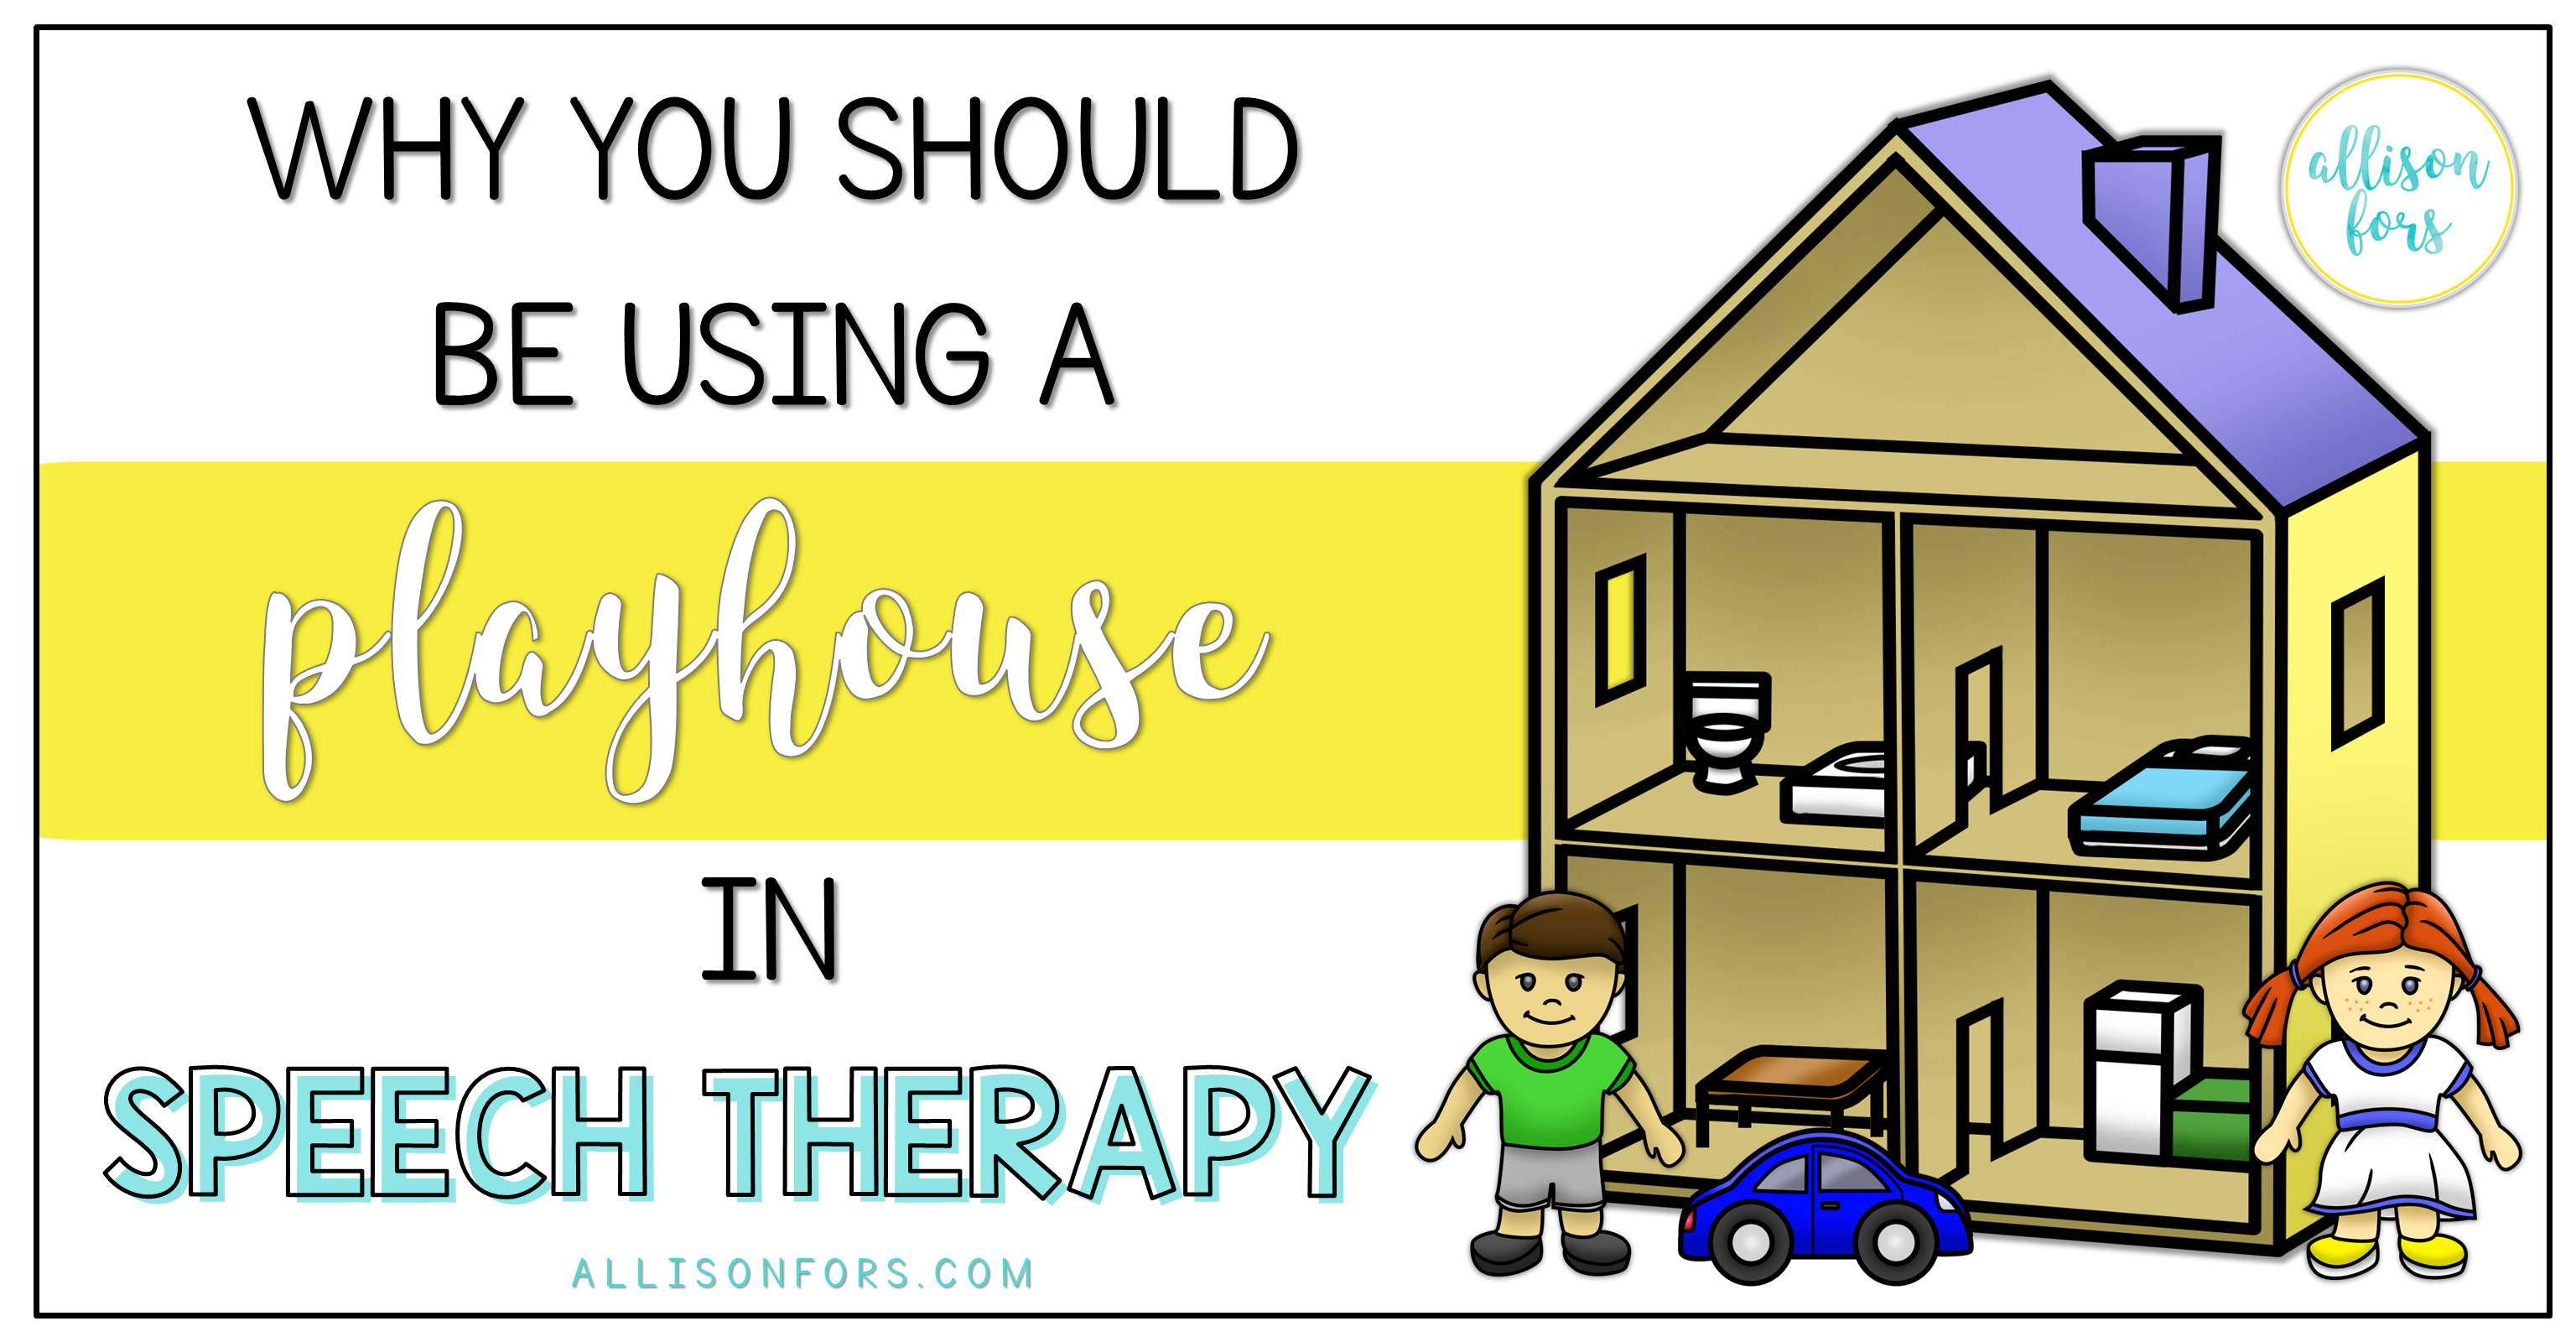 Why You Should Be Using a Playhouse in Speech Therapy